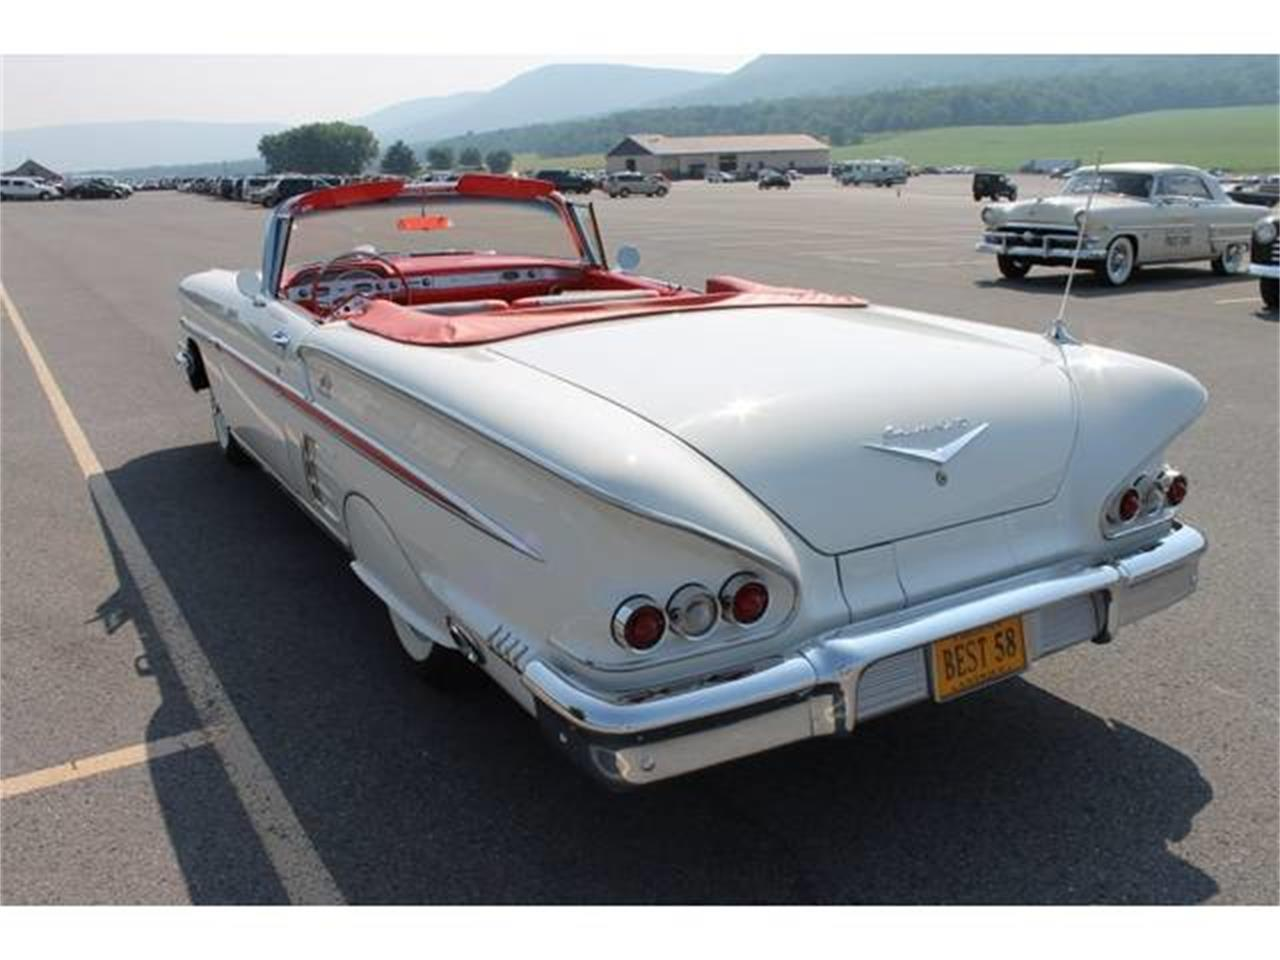 Large Picture of 1958 Impala located in MILL HALL Pennsylvania Auction Vehicle - LWTZ